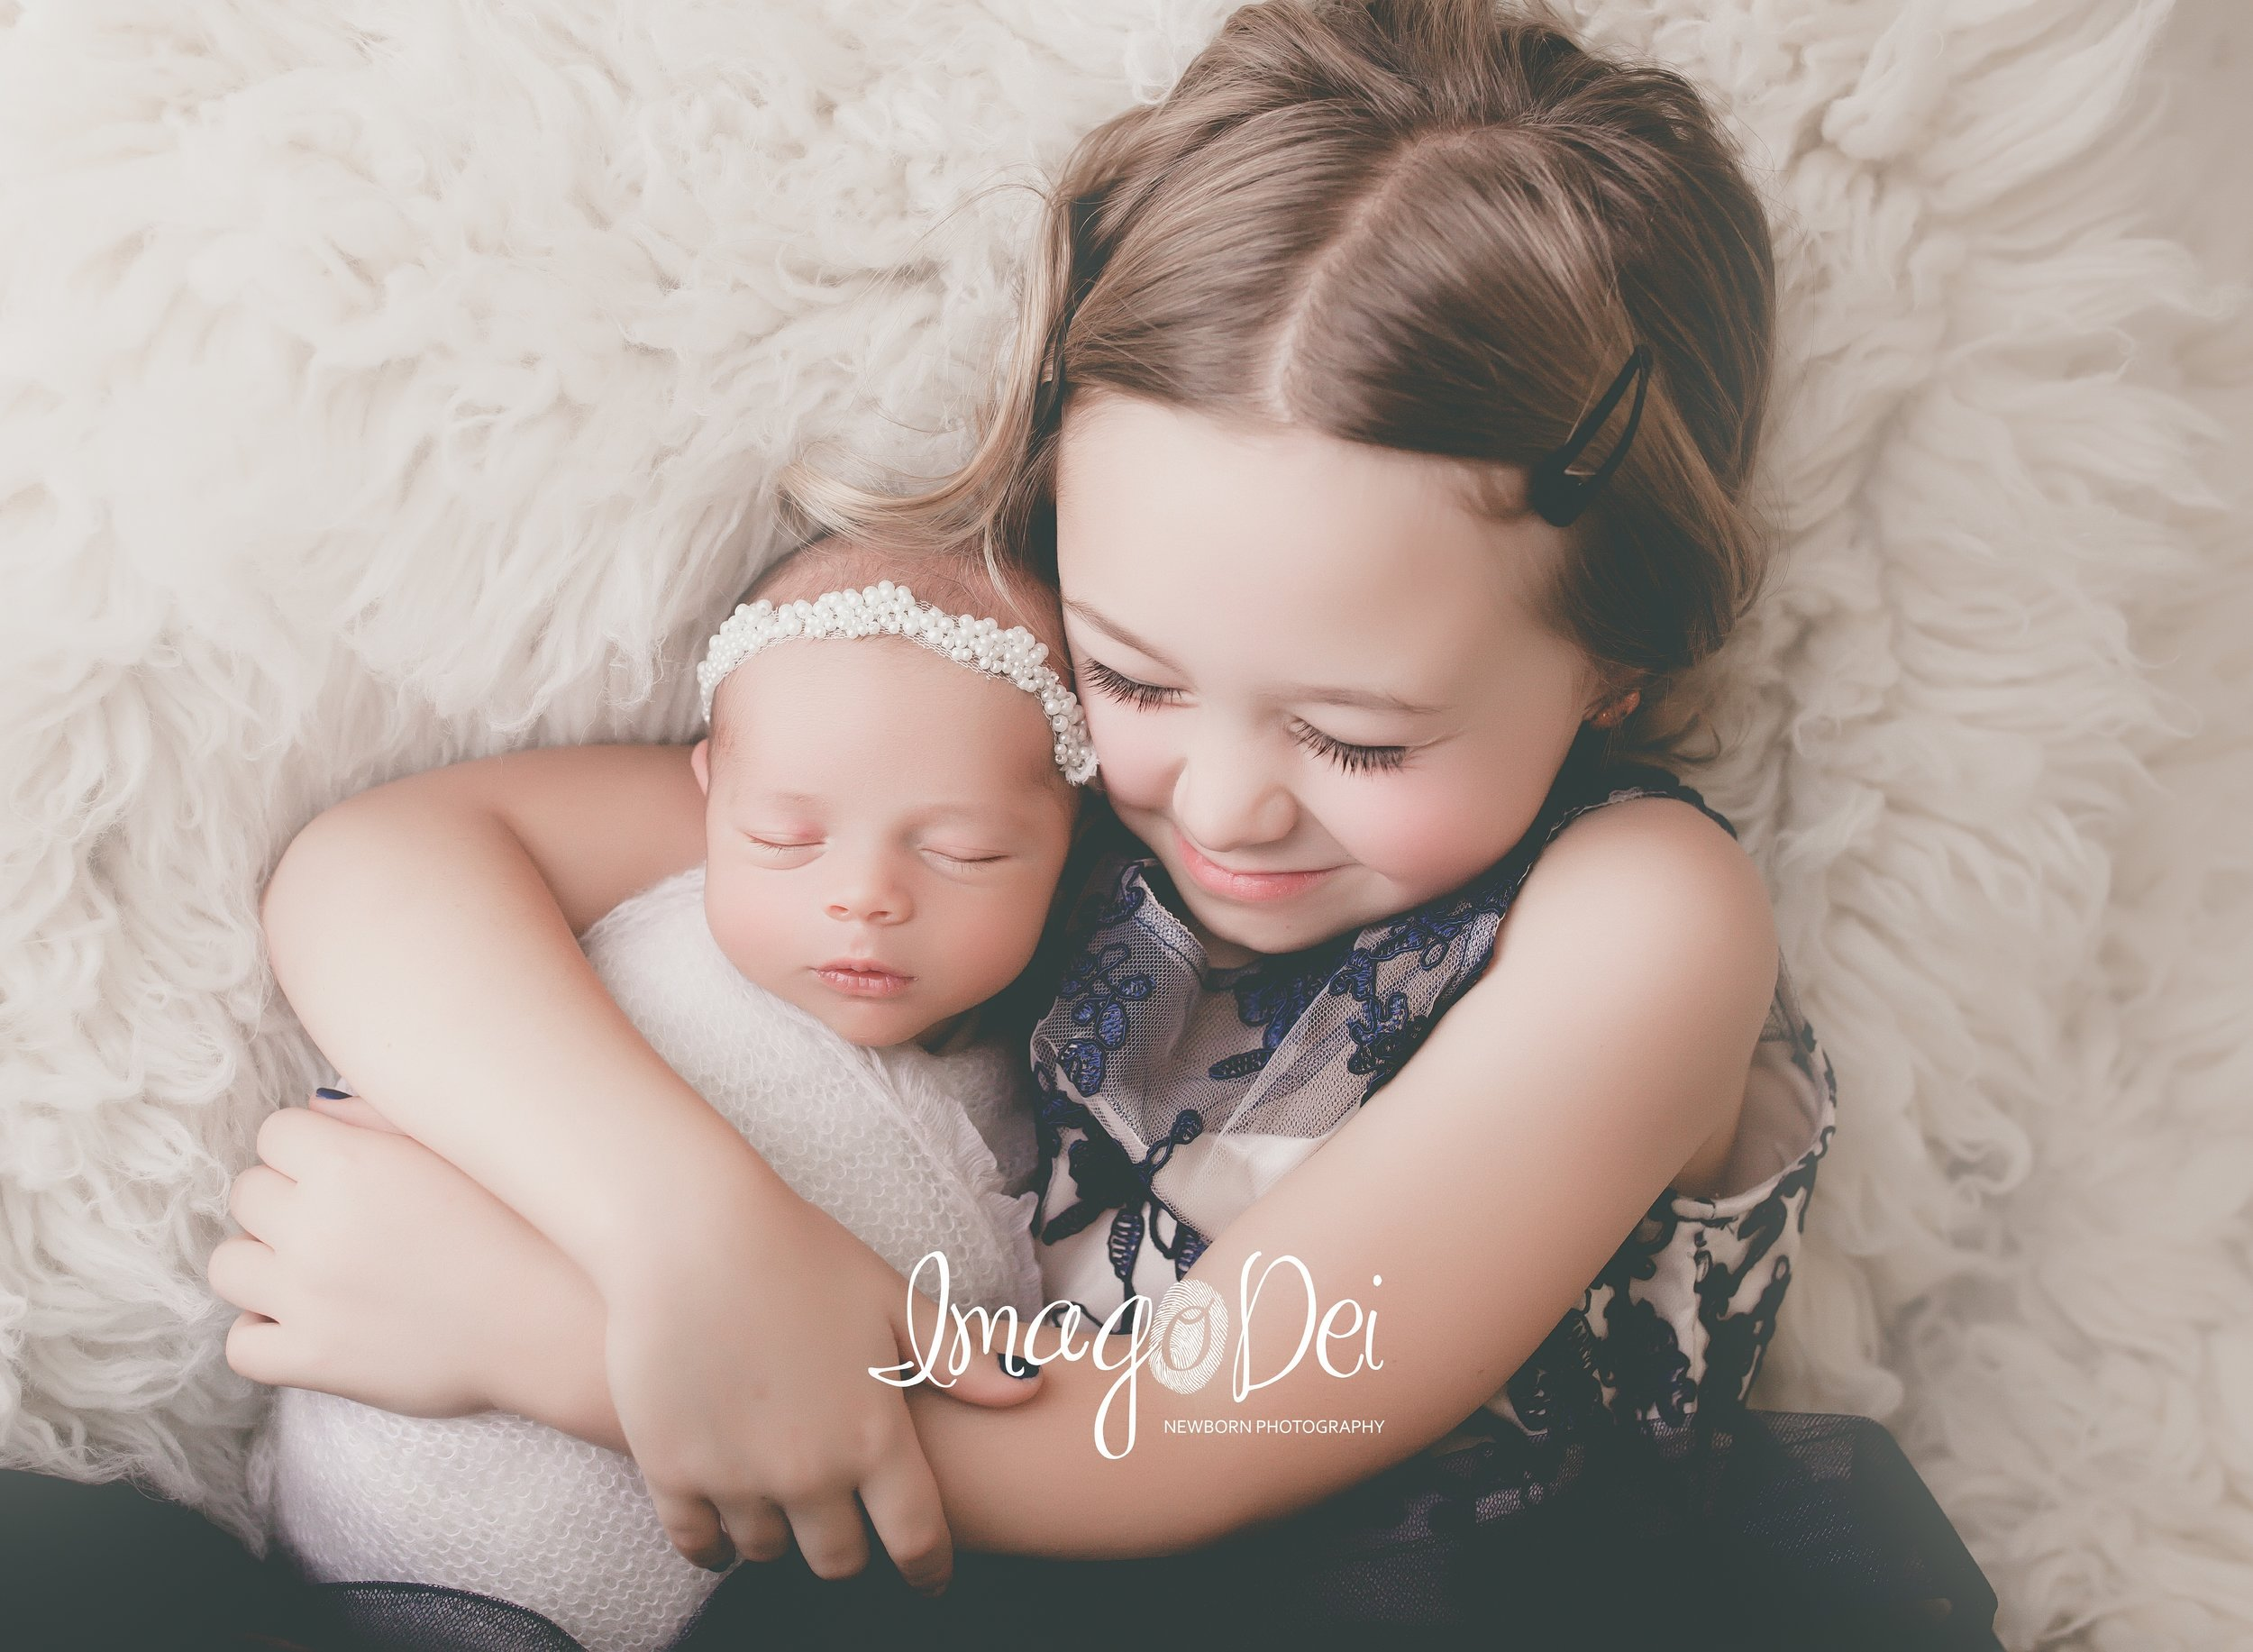 Imago Dei Newborn Photography- Lake Reg-1.jpg